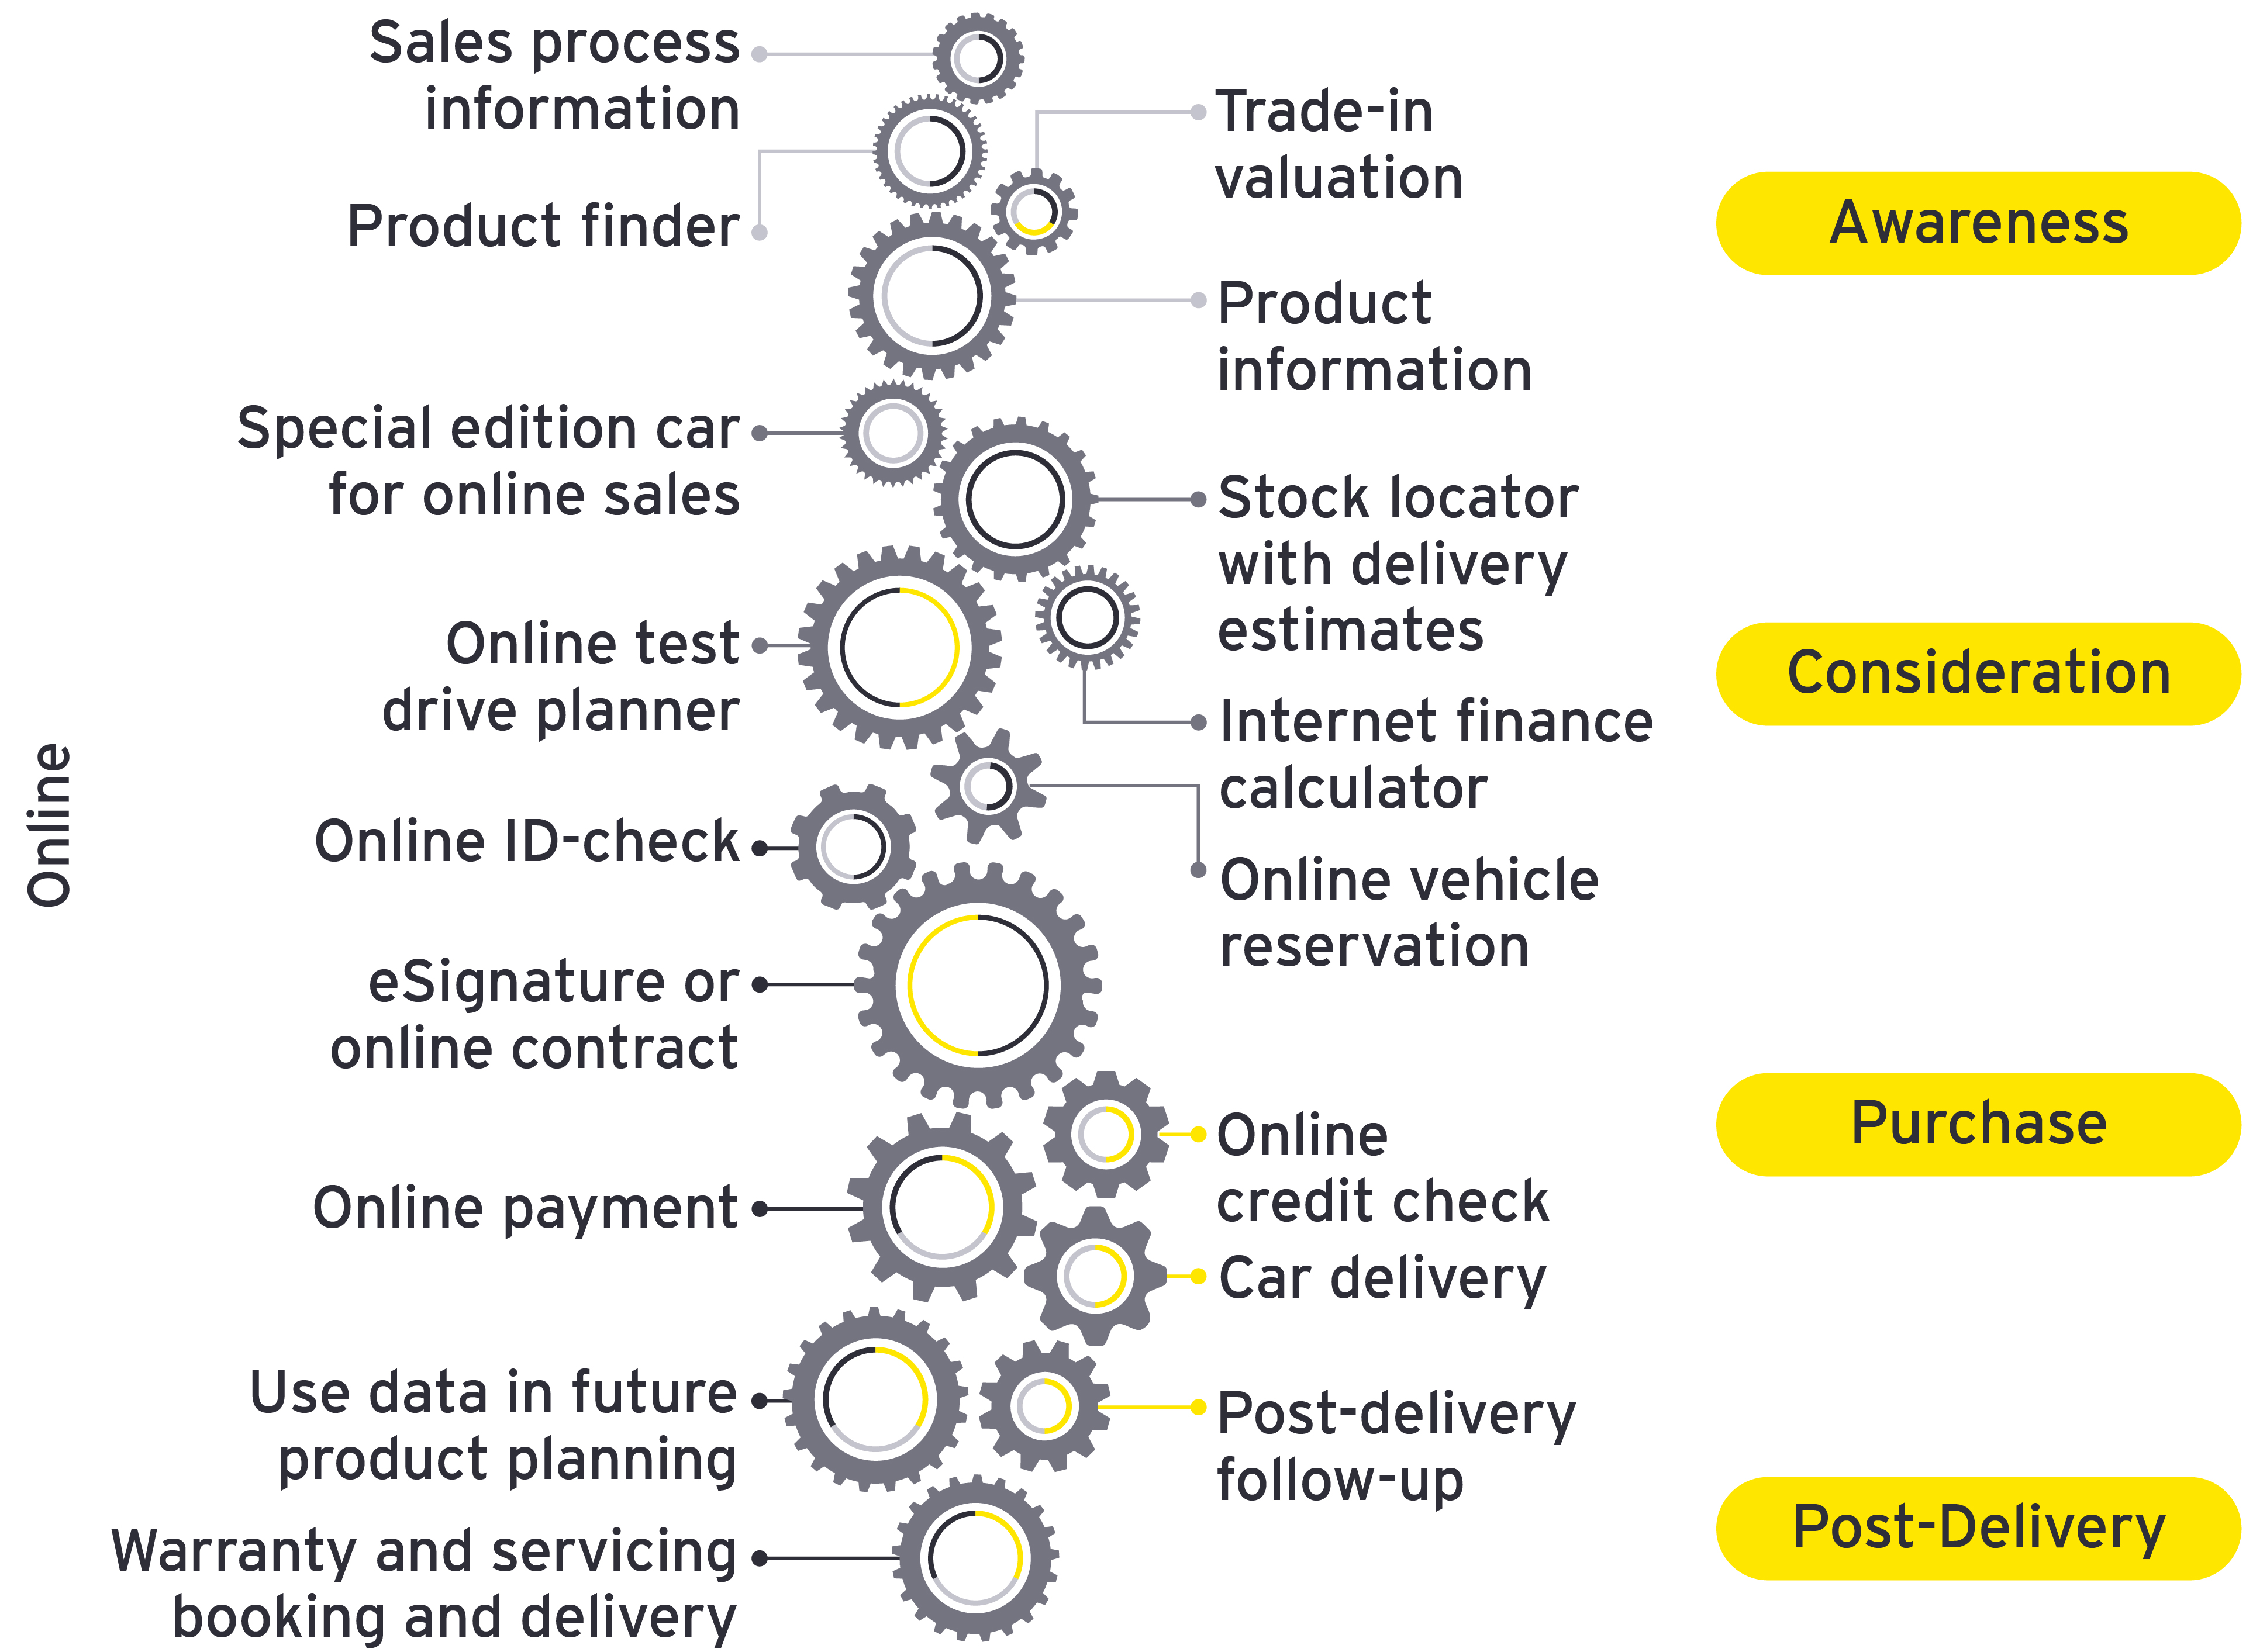 Digital-tools-used-in-a-contactless-vehicle-sales-process-graphic